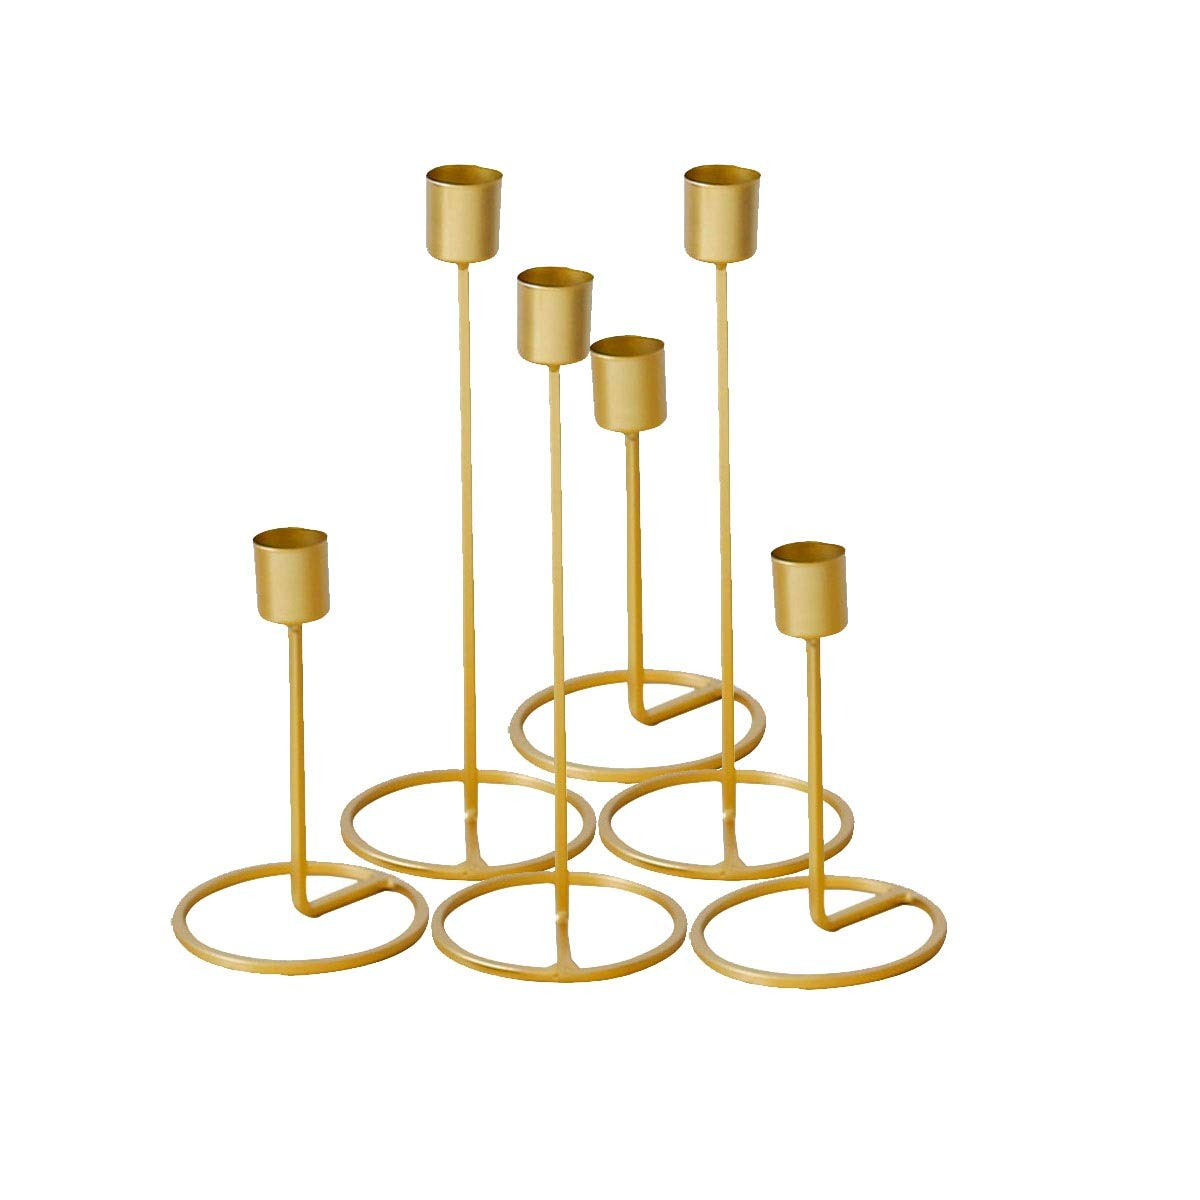 Bonaweite Candle Holders Decorations Romantic Decor Candlestick Decorative Accessories for Wedding Party Living Room Table Home